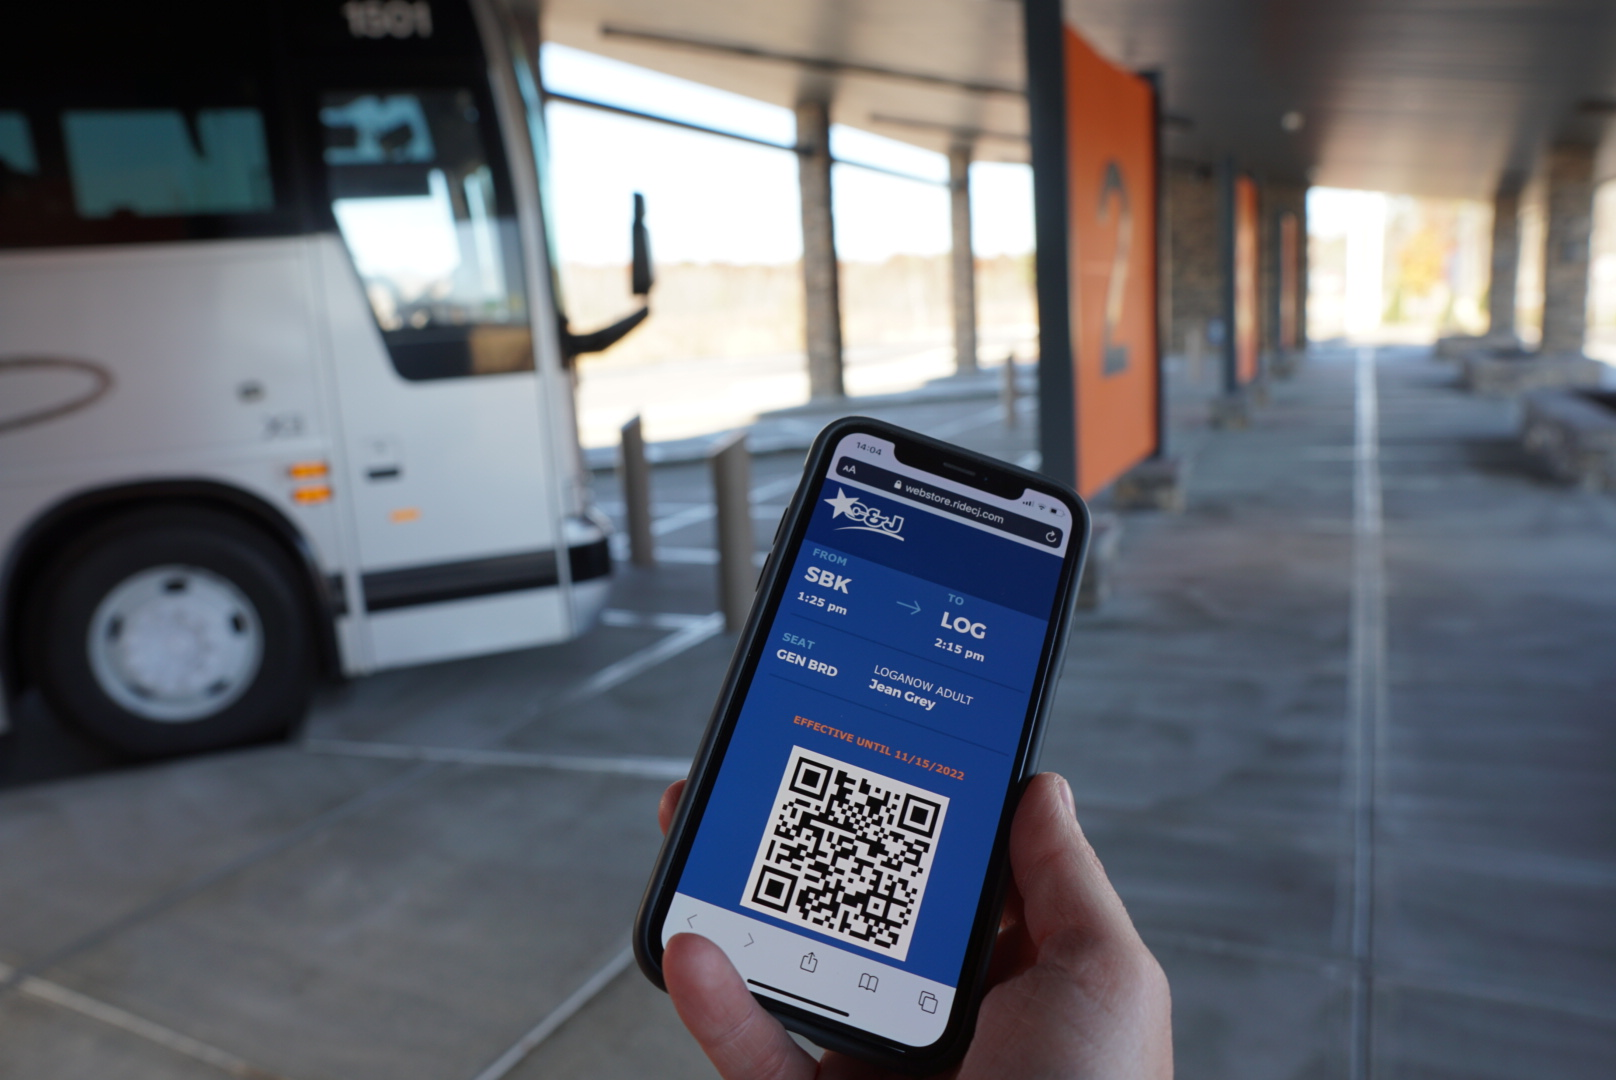 C&J Bus Lines - Photo of mobile ticketing